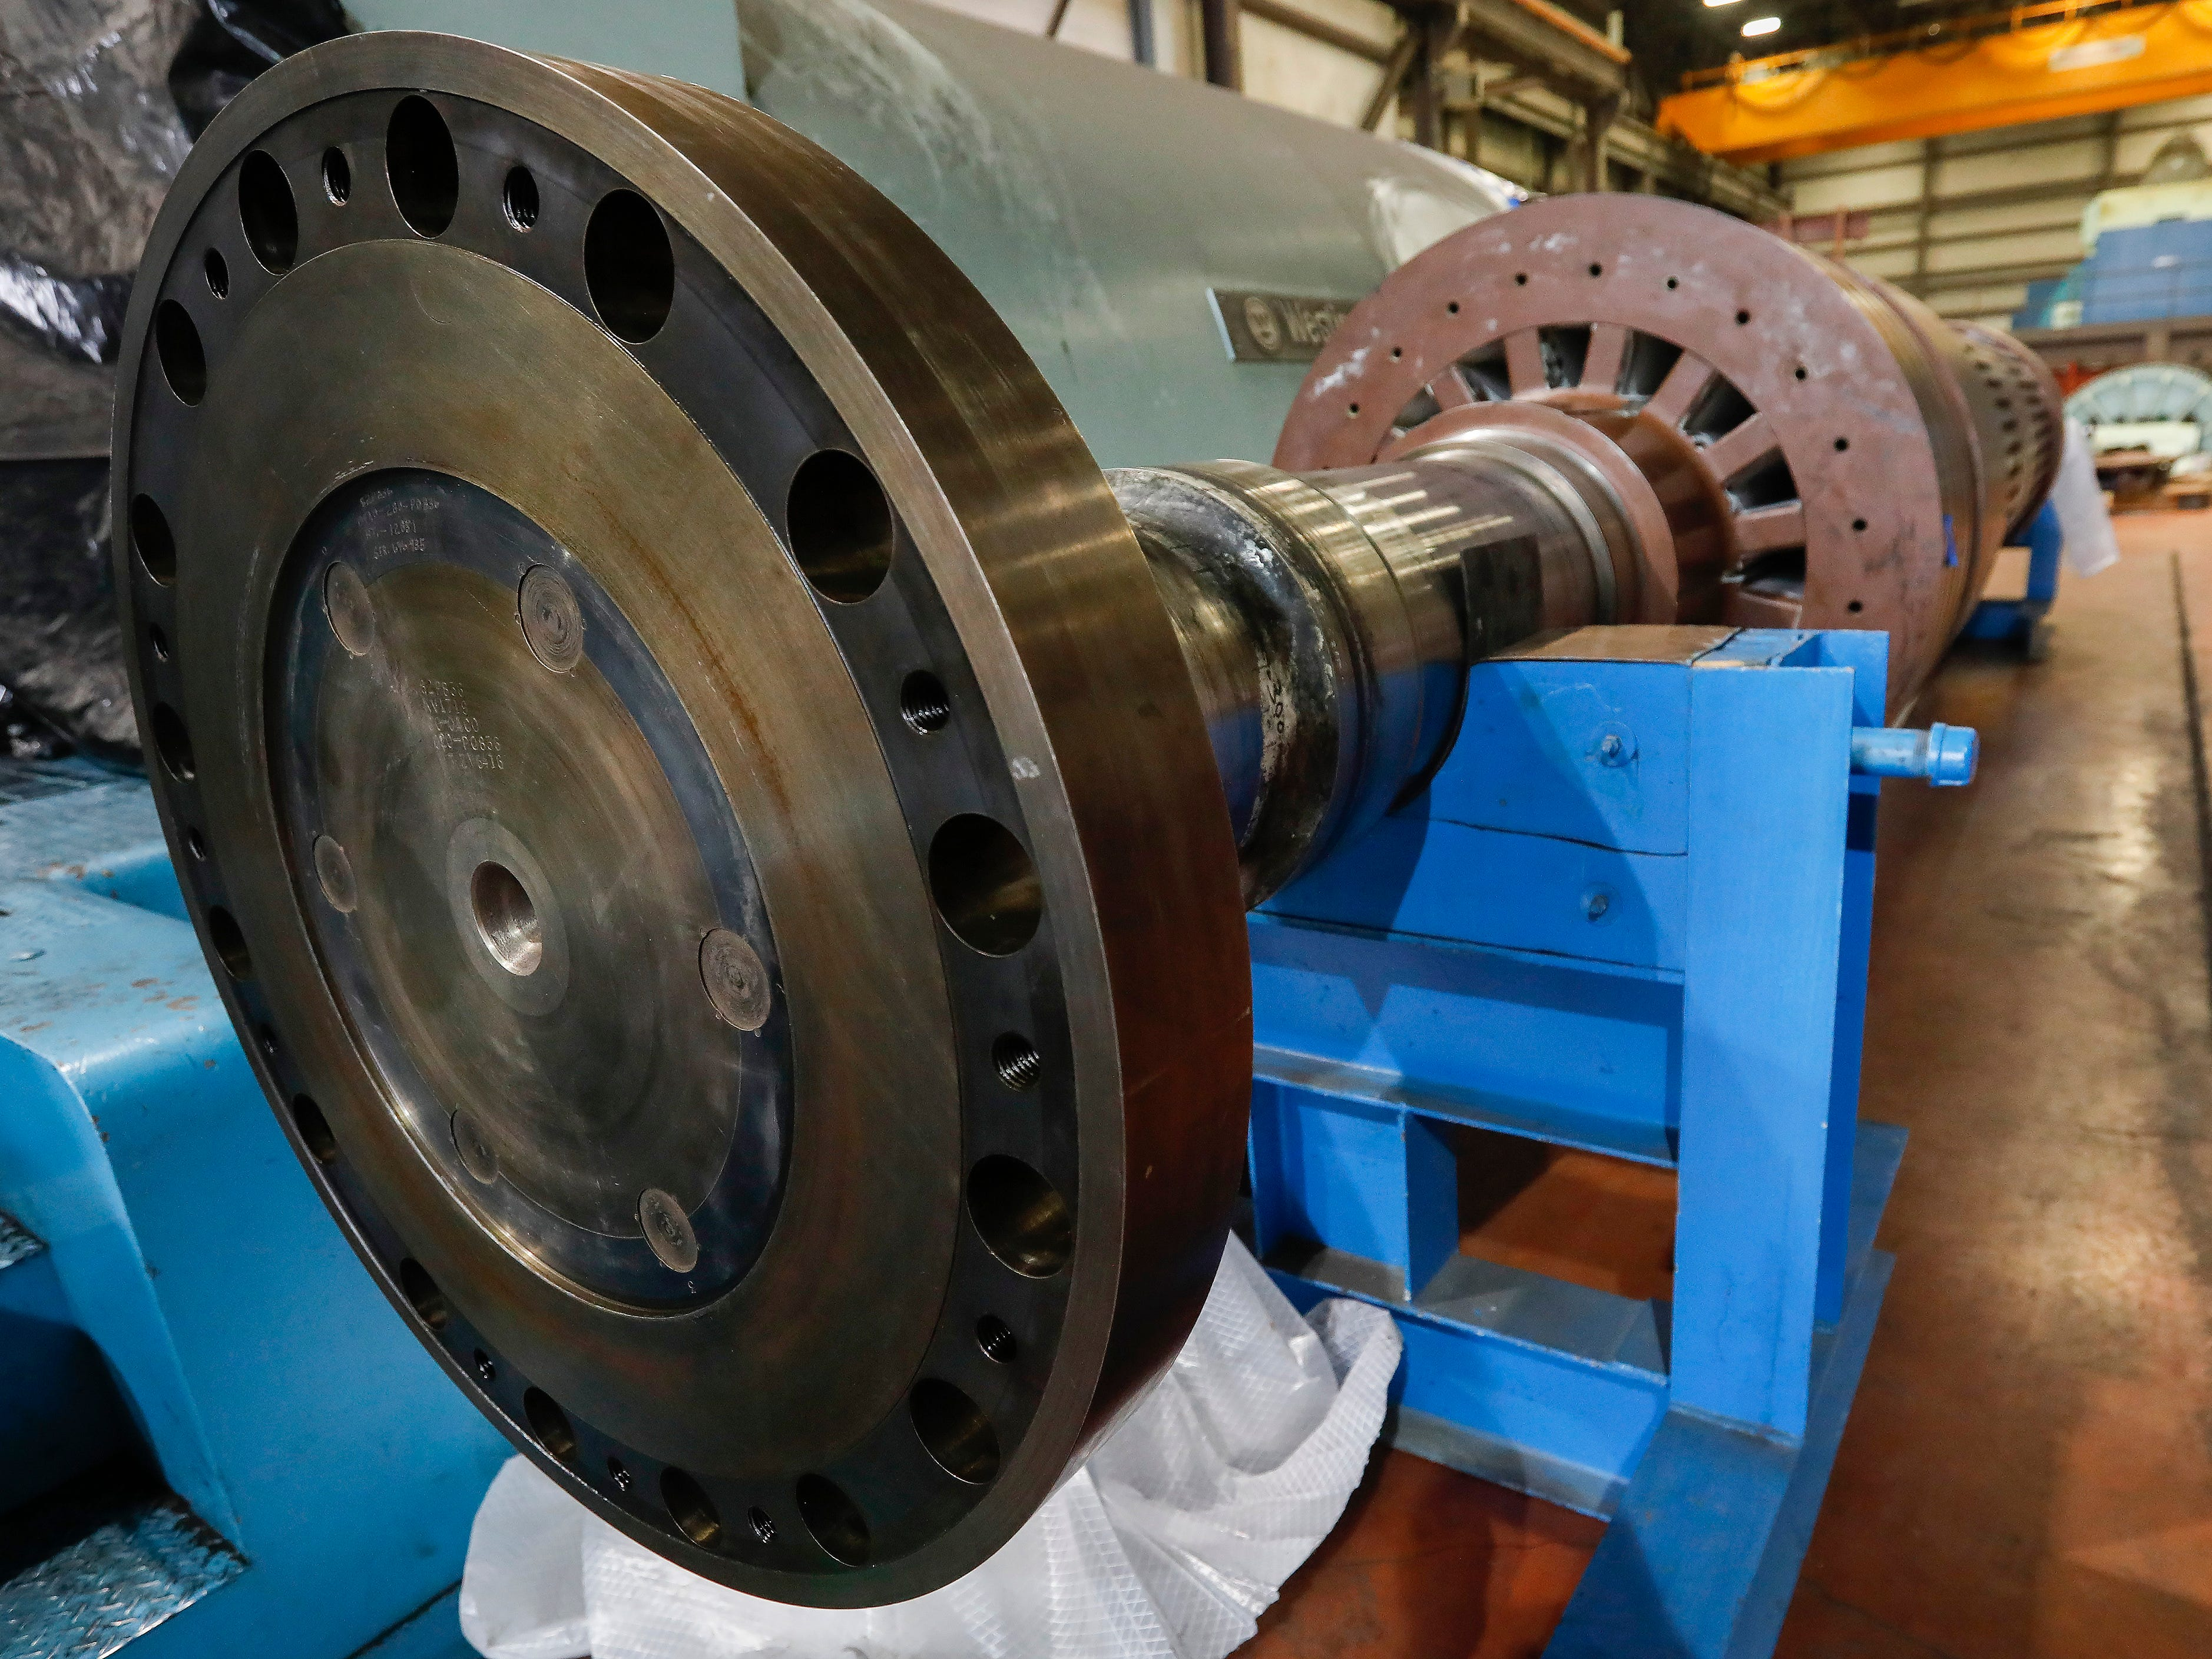 High winds on Feb. 23 caused a switch to be flipped at the John Twitty Energy Center, causing damage to the rotor   near the 86,000- pound turbine.